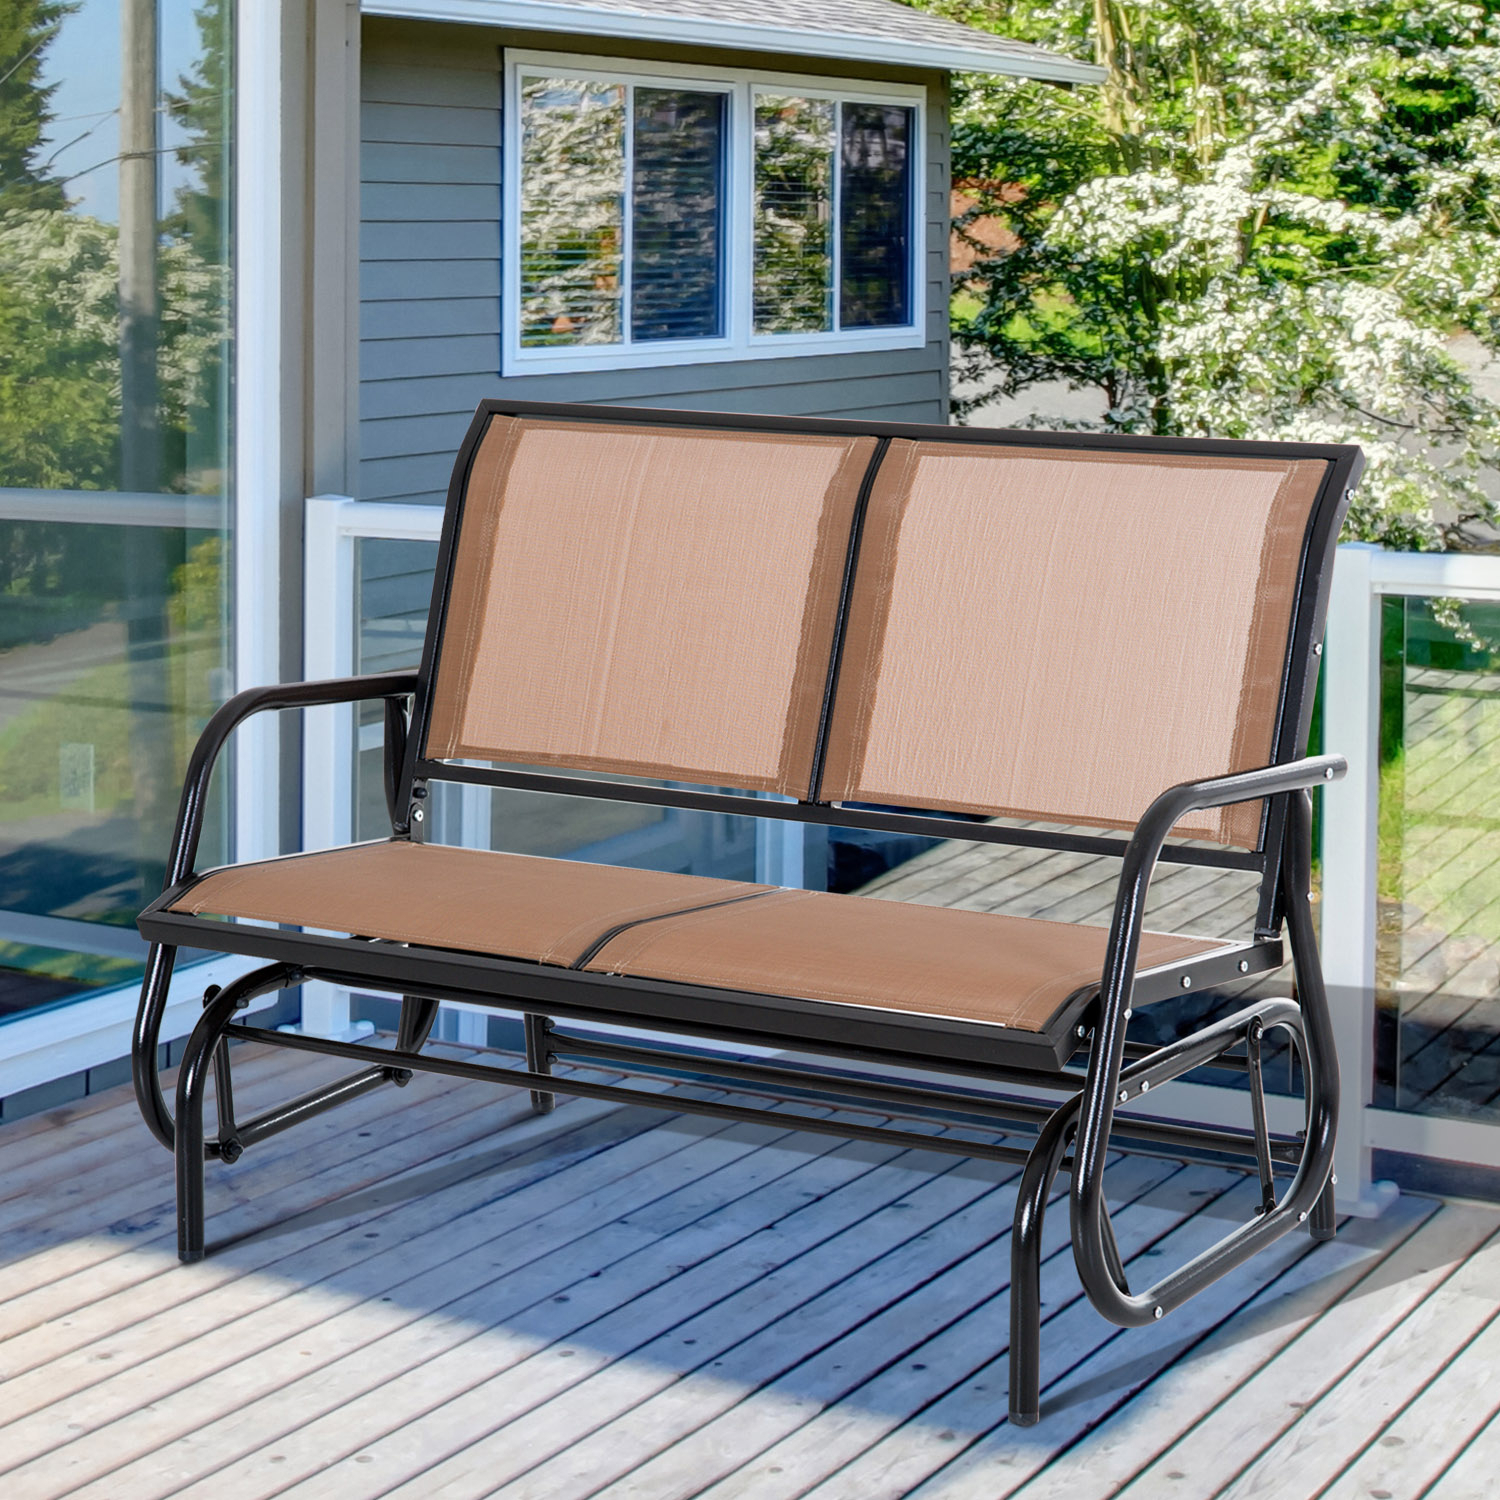 Outsunny Outdoor Steel Sling Fabric Glider Double Swing Pertaining To Outdoor Fabric Glider Benches (View 20 of 25)